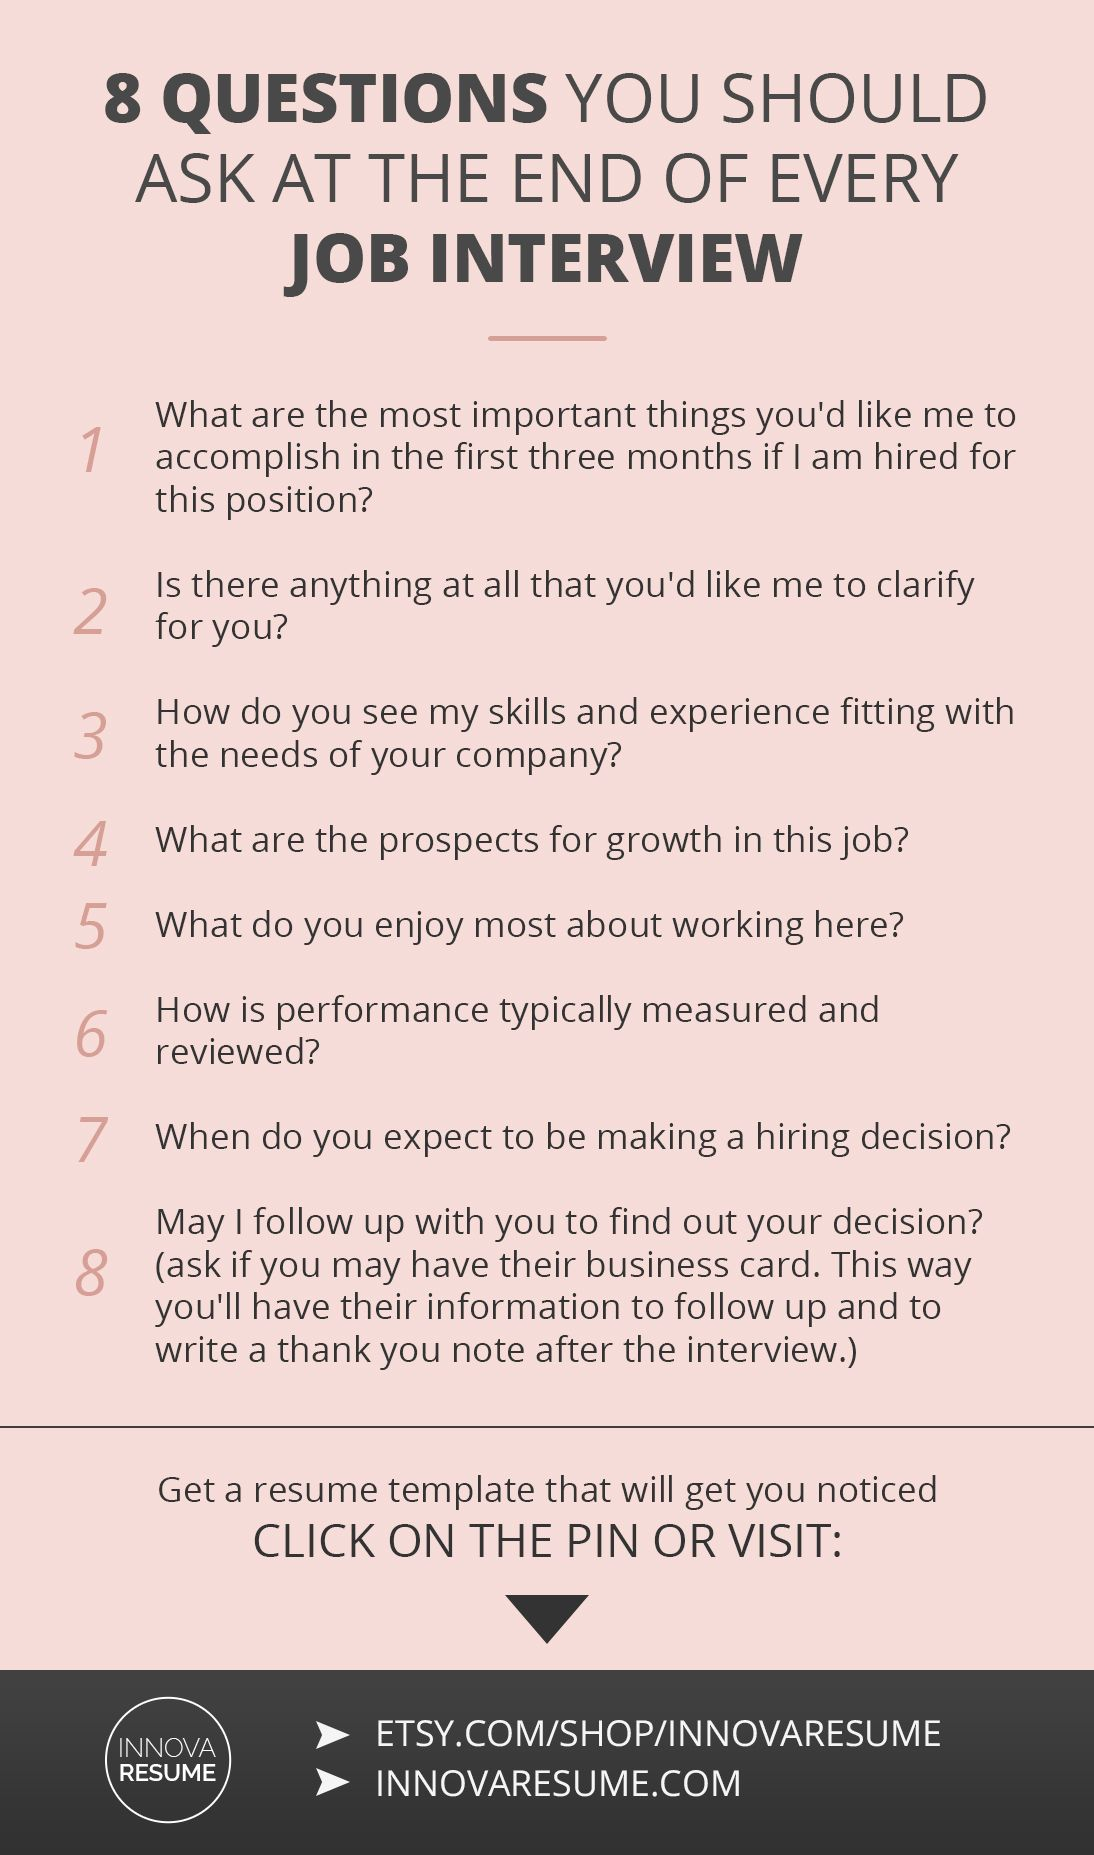 8 Questions You Should Ask At Every Job Interview